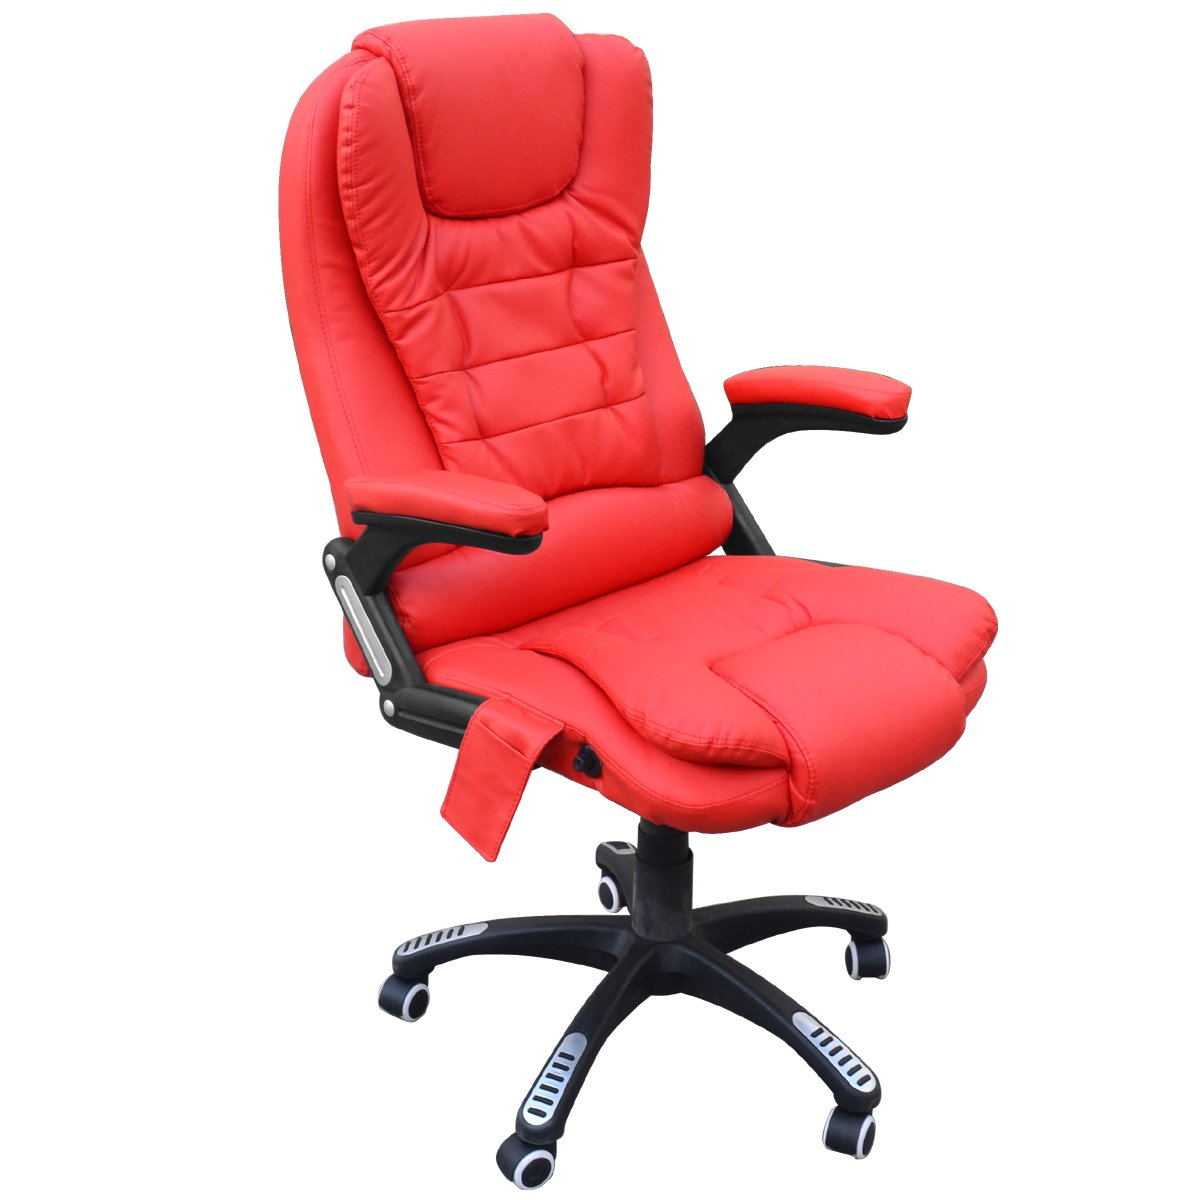 SWT Luxury 6 Point Massage Reclining Designer Office Massage Chair (Red)       Office ProductsCustomer reviews and more information